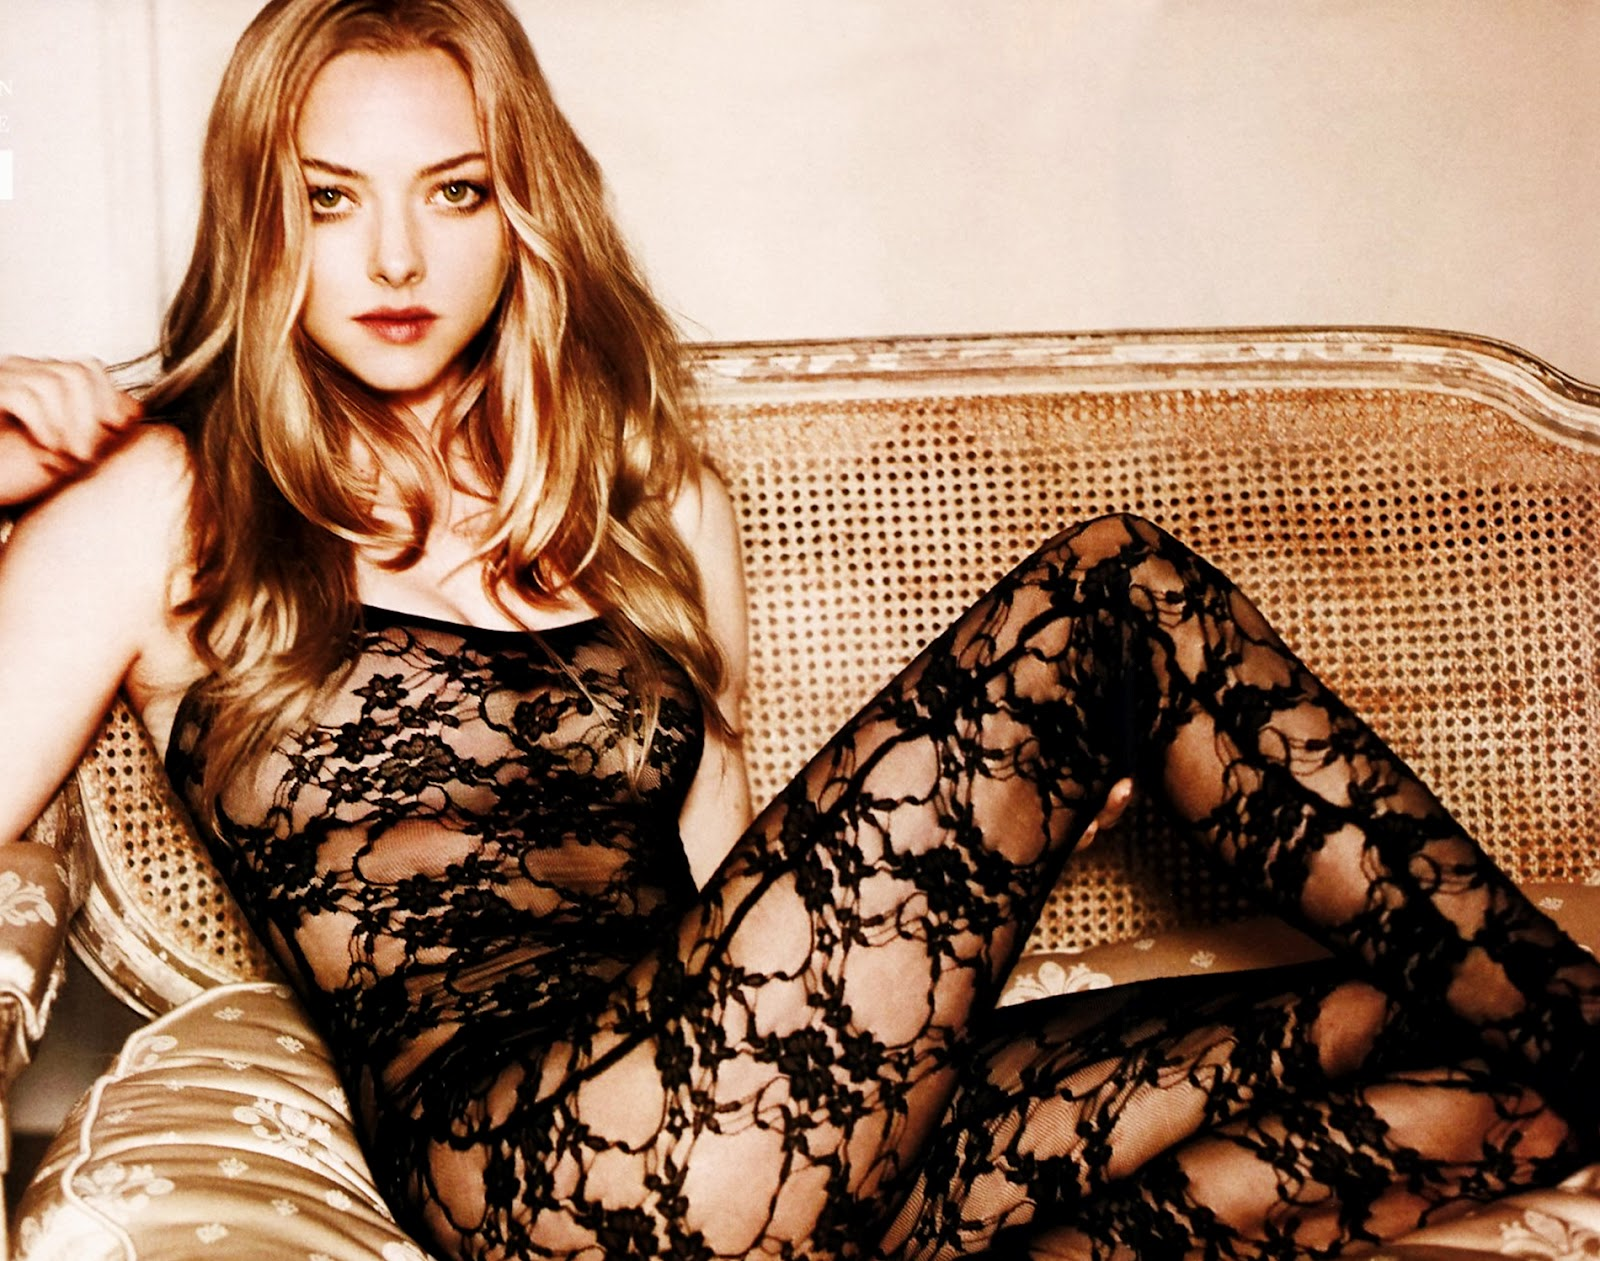 http://4.bp.blogspot.com/-HdoDorrIPNw/UARYSLkJ0fI/AAAAAAAABrM/7zY21cIZIE4/s1600/Amanda-Seyfried-Hot-Wallpapers-5.jpg